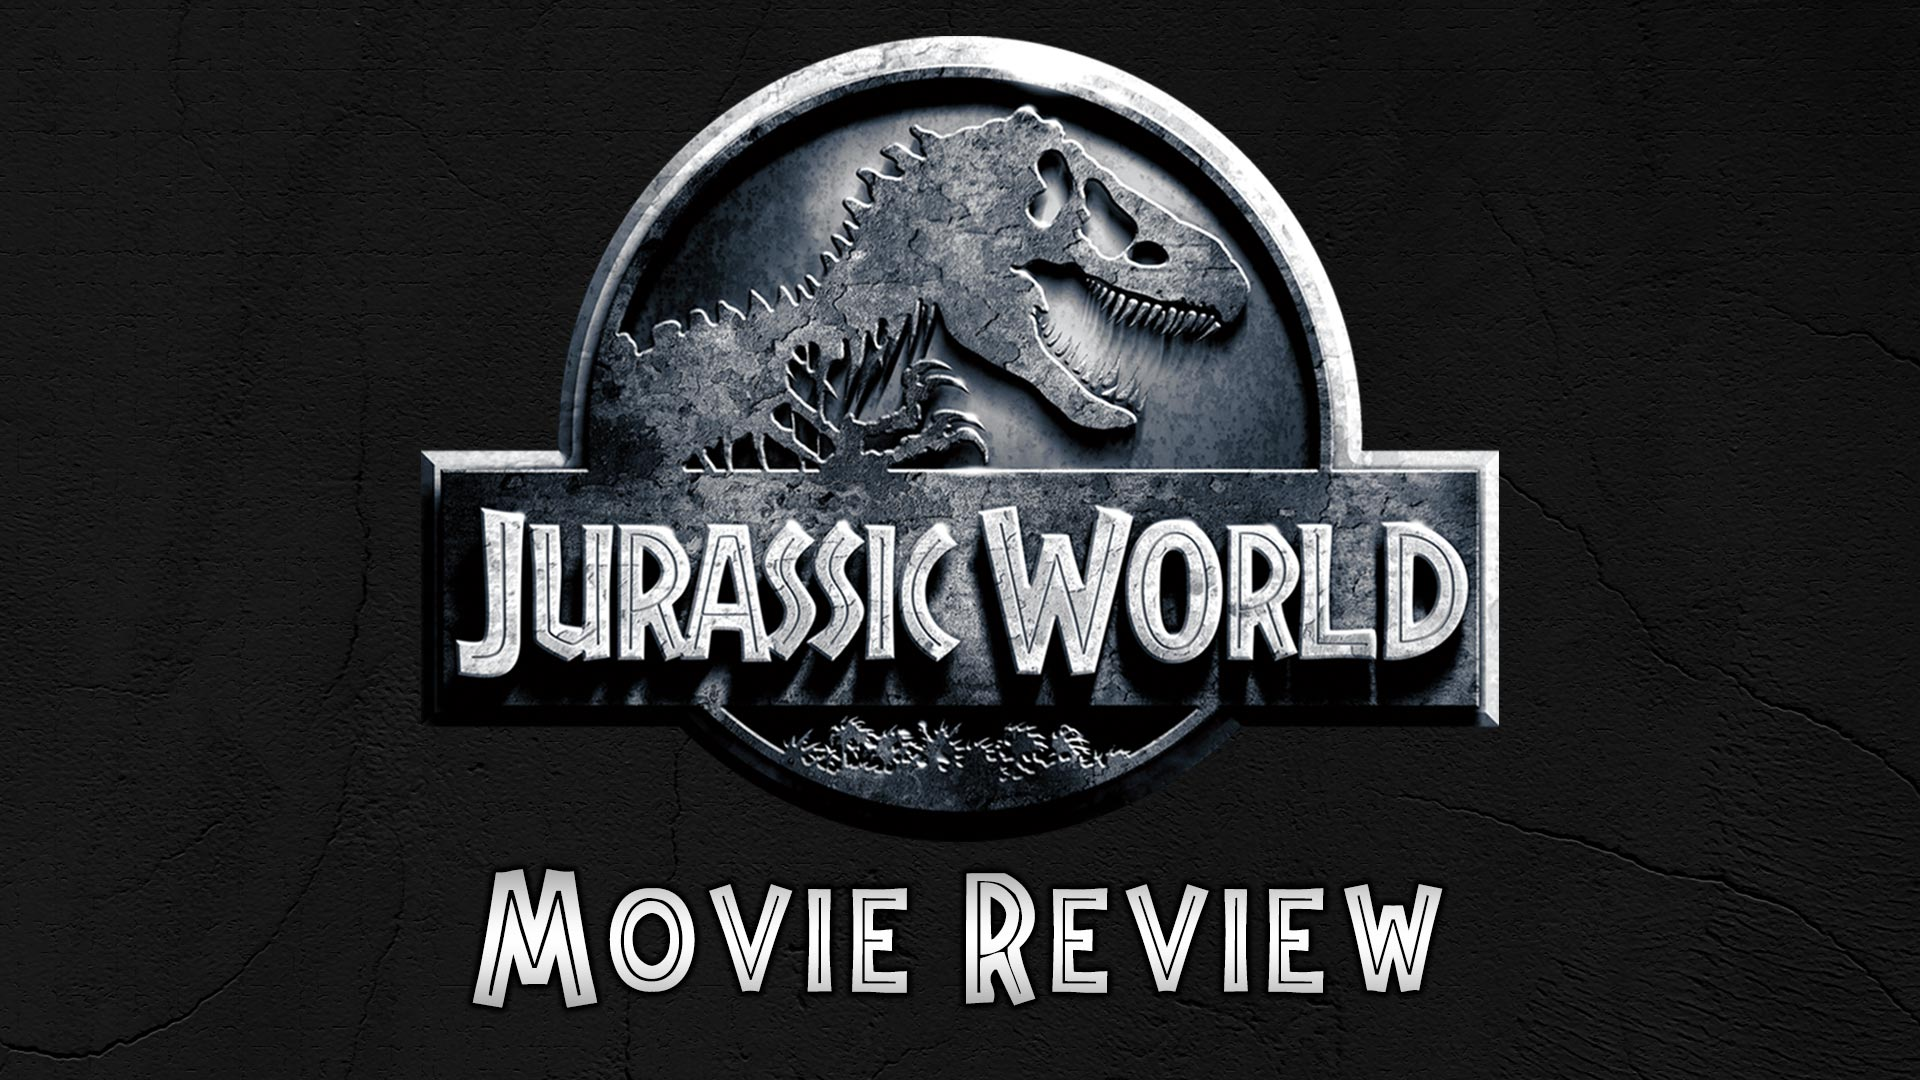 movie review Jurassic World podcast